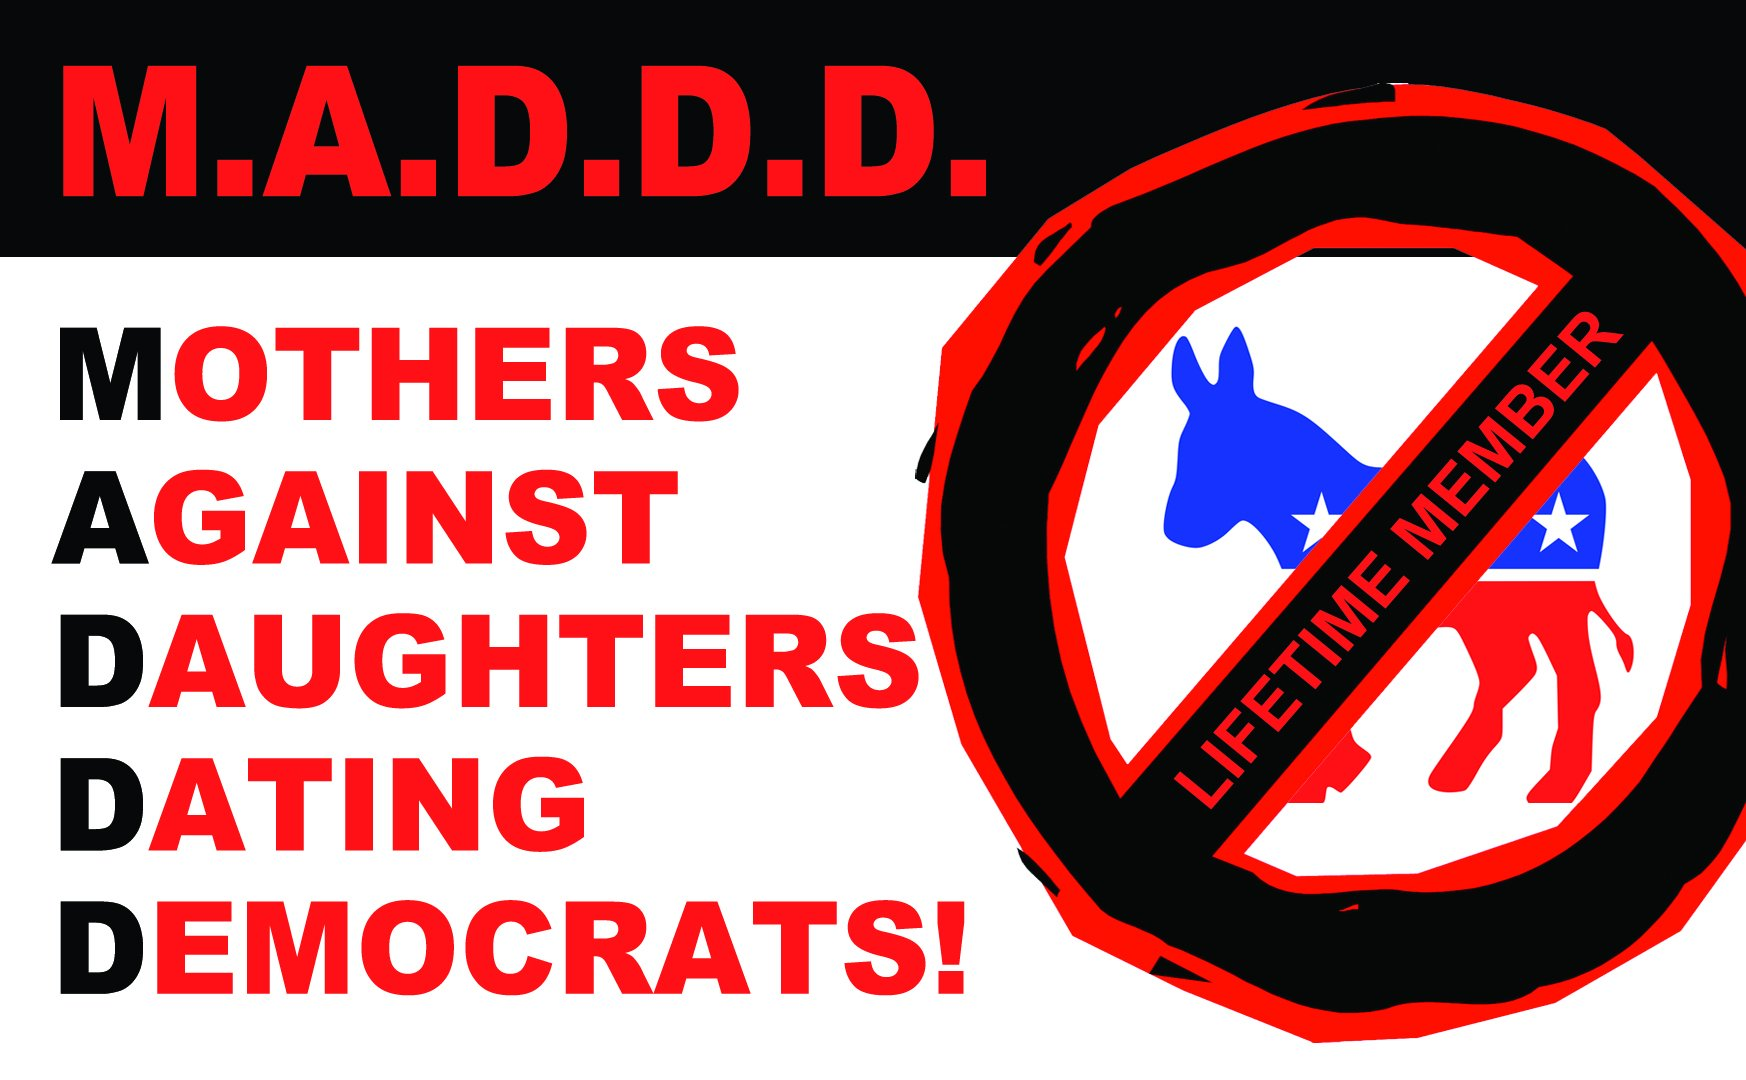 M.A.D.D.D. Mother's Against Daughters Dating Democrats Bumper Sticker (MADE IN THE USA)